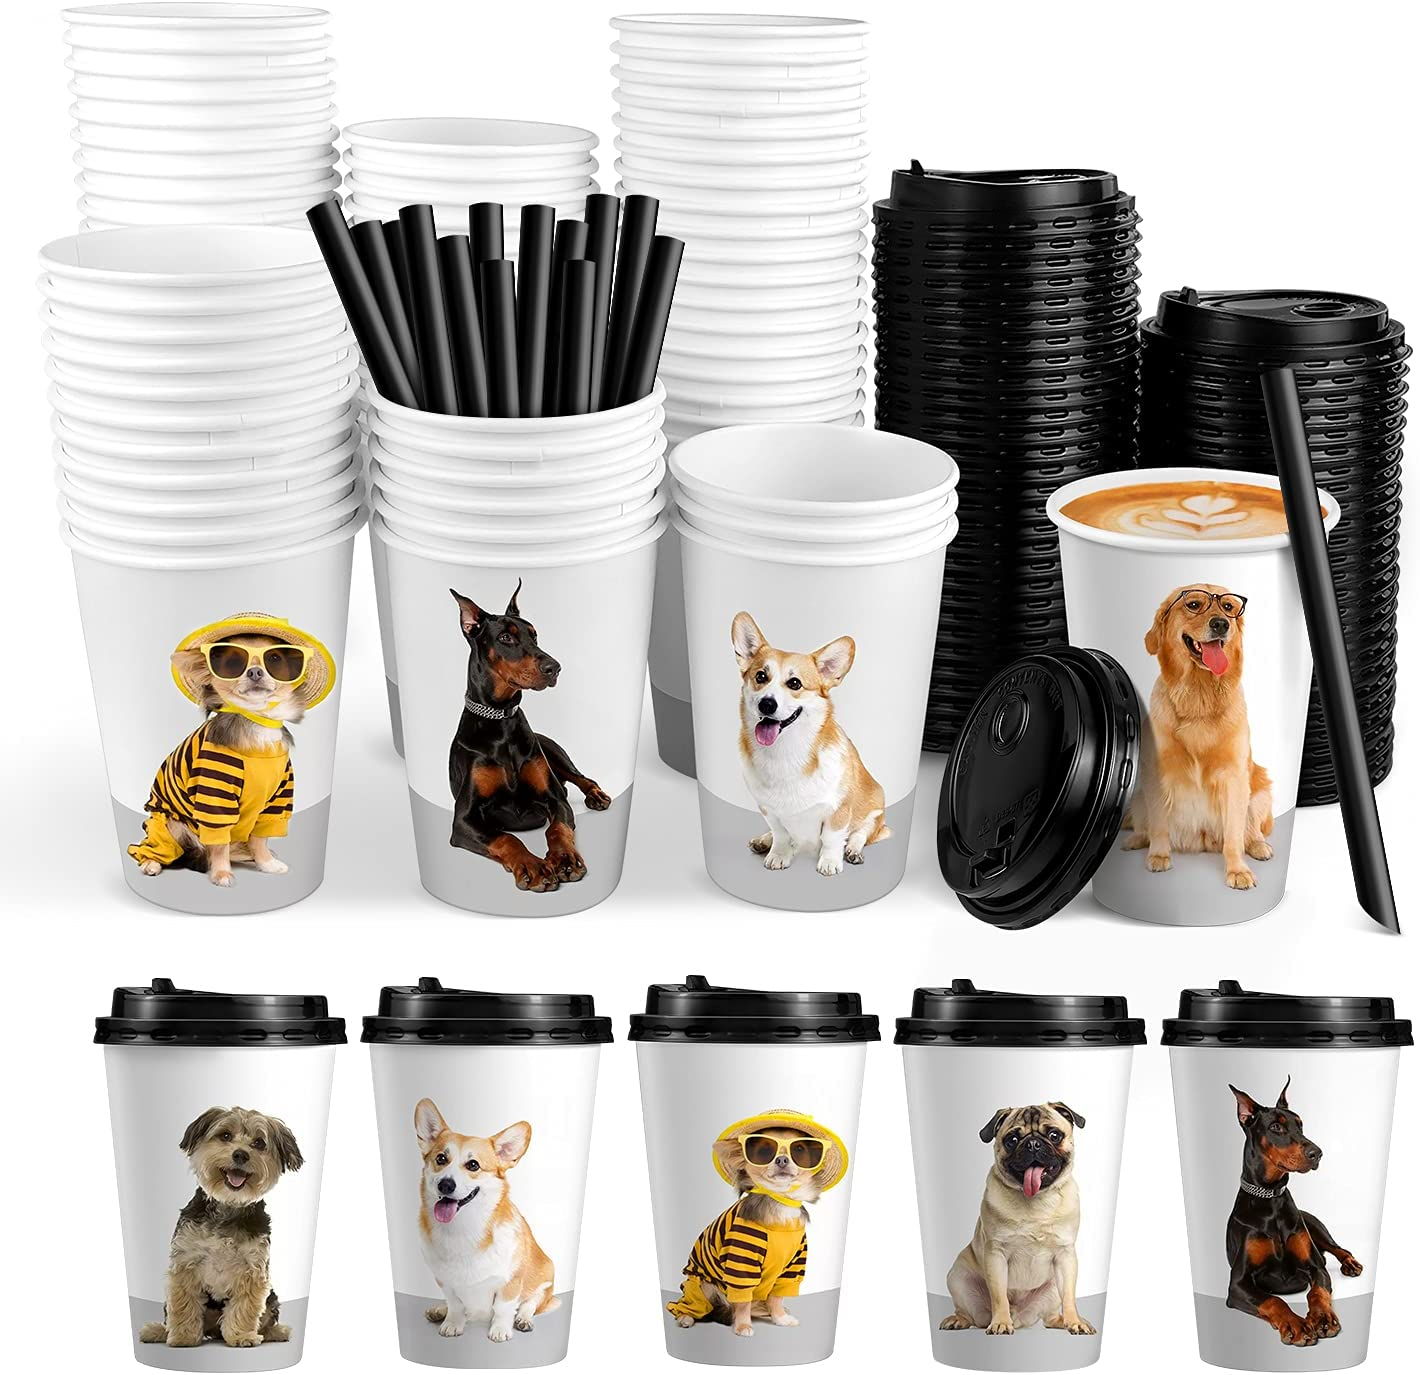 72 Sets Disposable Coffee Cups with Lids, White To Go Paper Cups, Hot Drink Cups with Lids & Straws for Office Parties Home Travel - Dog Puppy Pet Theme Design